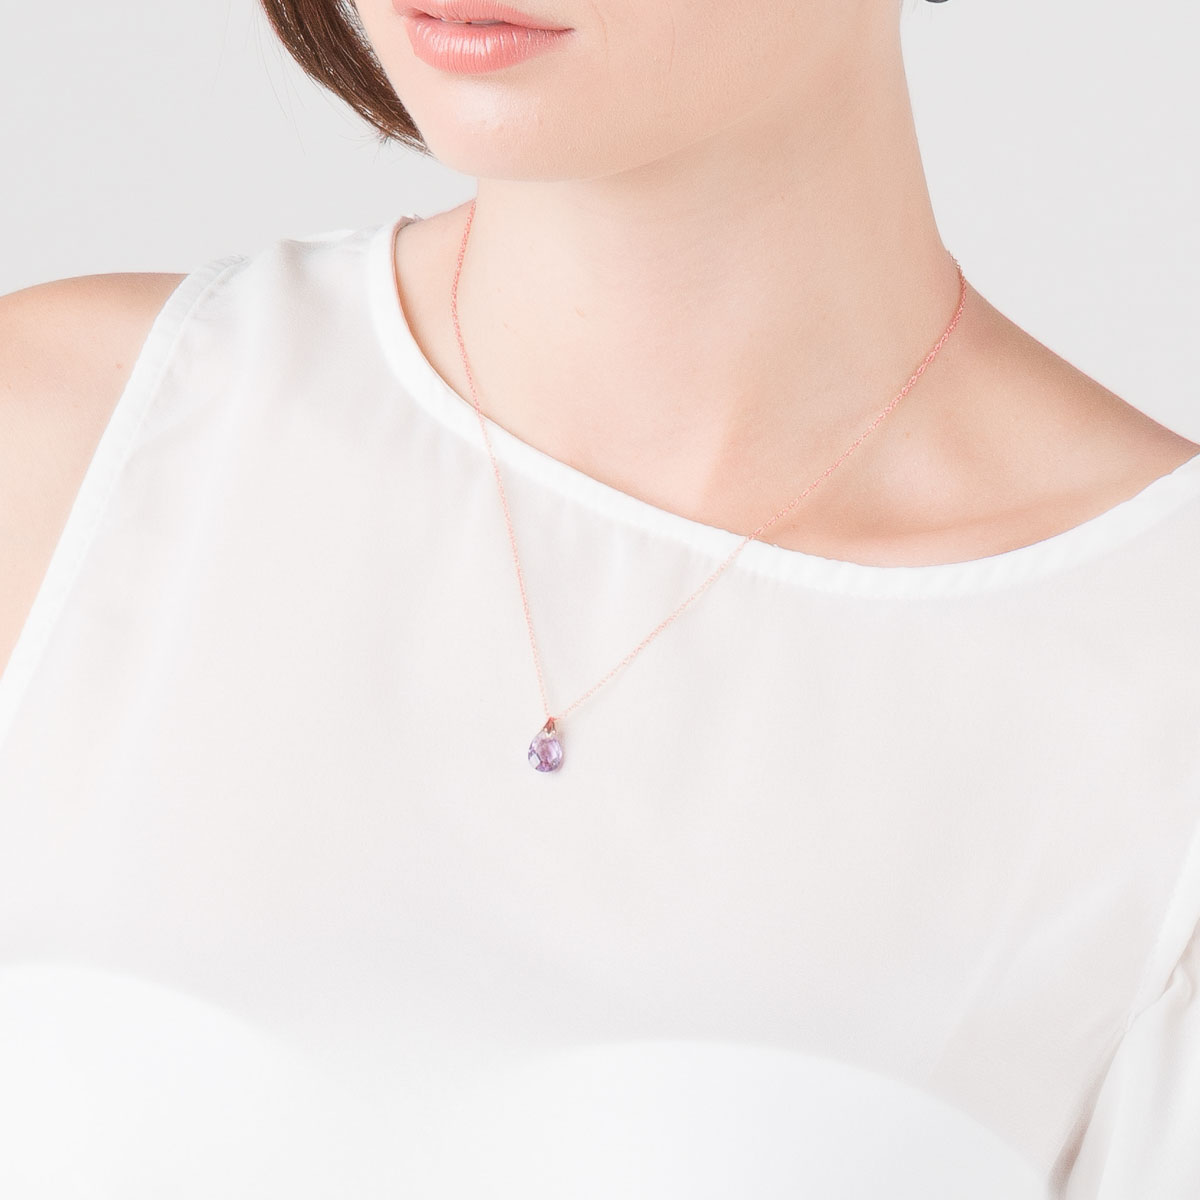 Amethyst Dewdrop Pendant Necklace 3 ct in 9ct Rose Gold